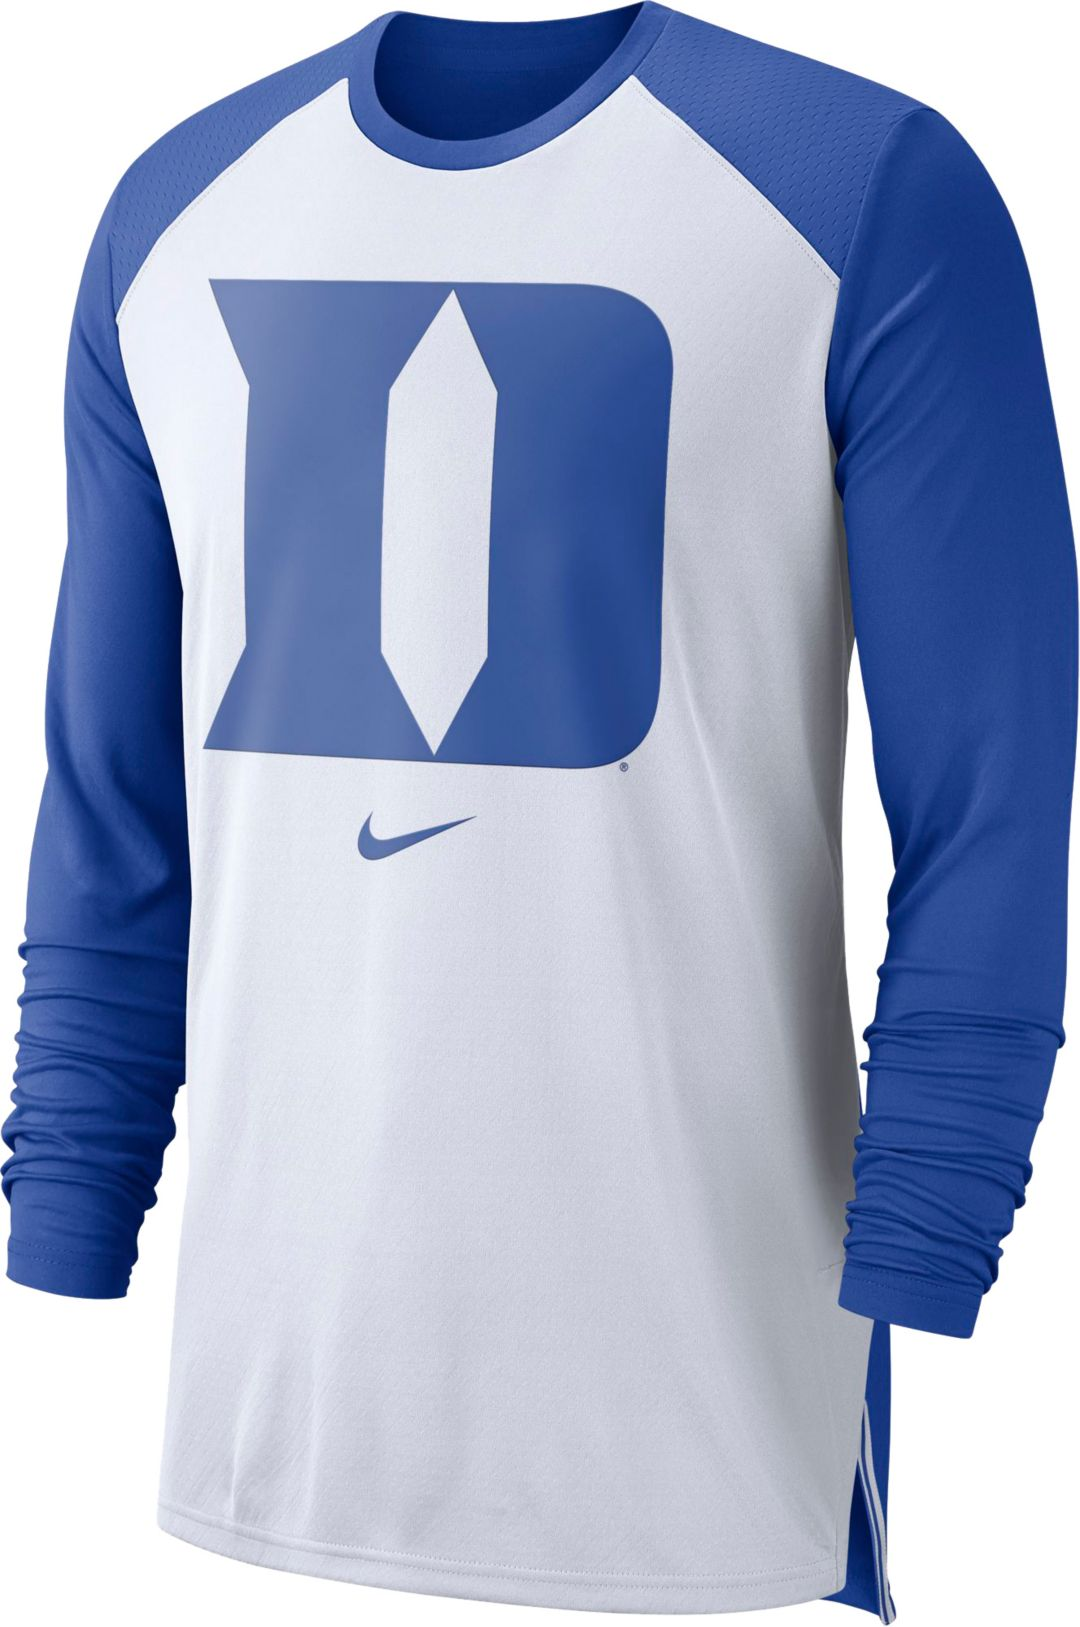 new style 44188 f980b Nike Men's Duke Blue Devils White/Duke Blue Long Sleeve Shooting Shirt